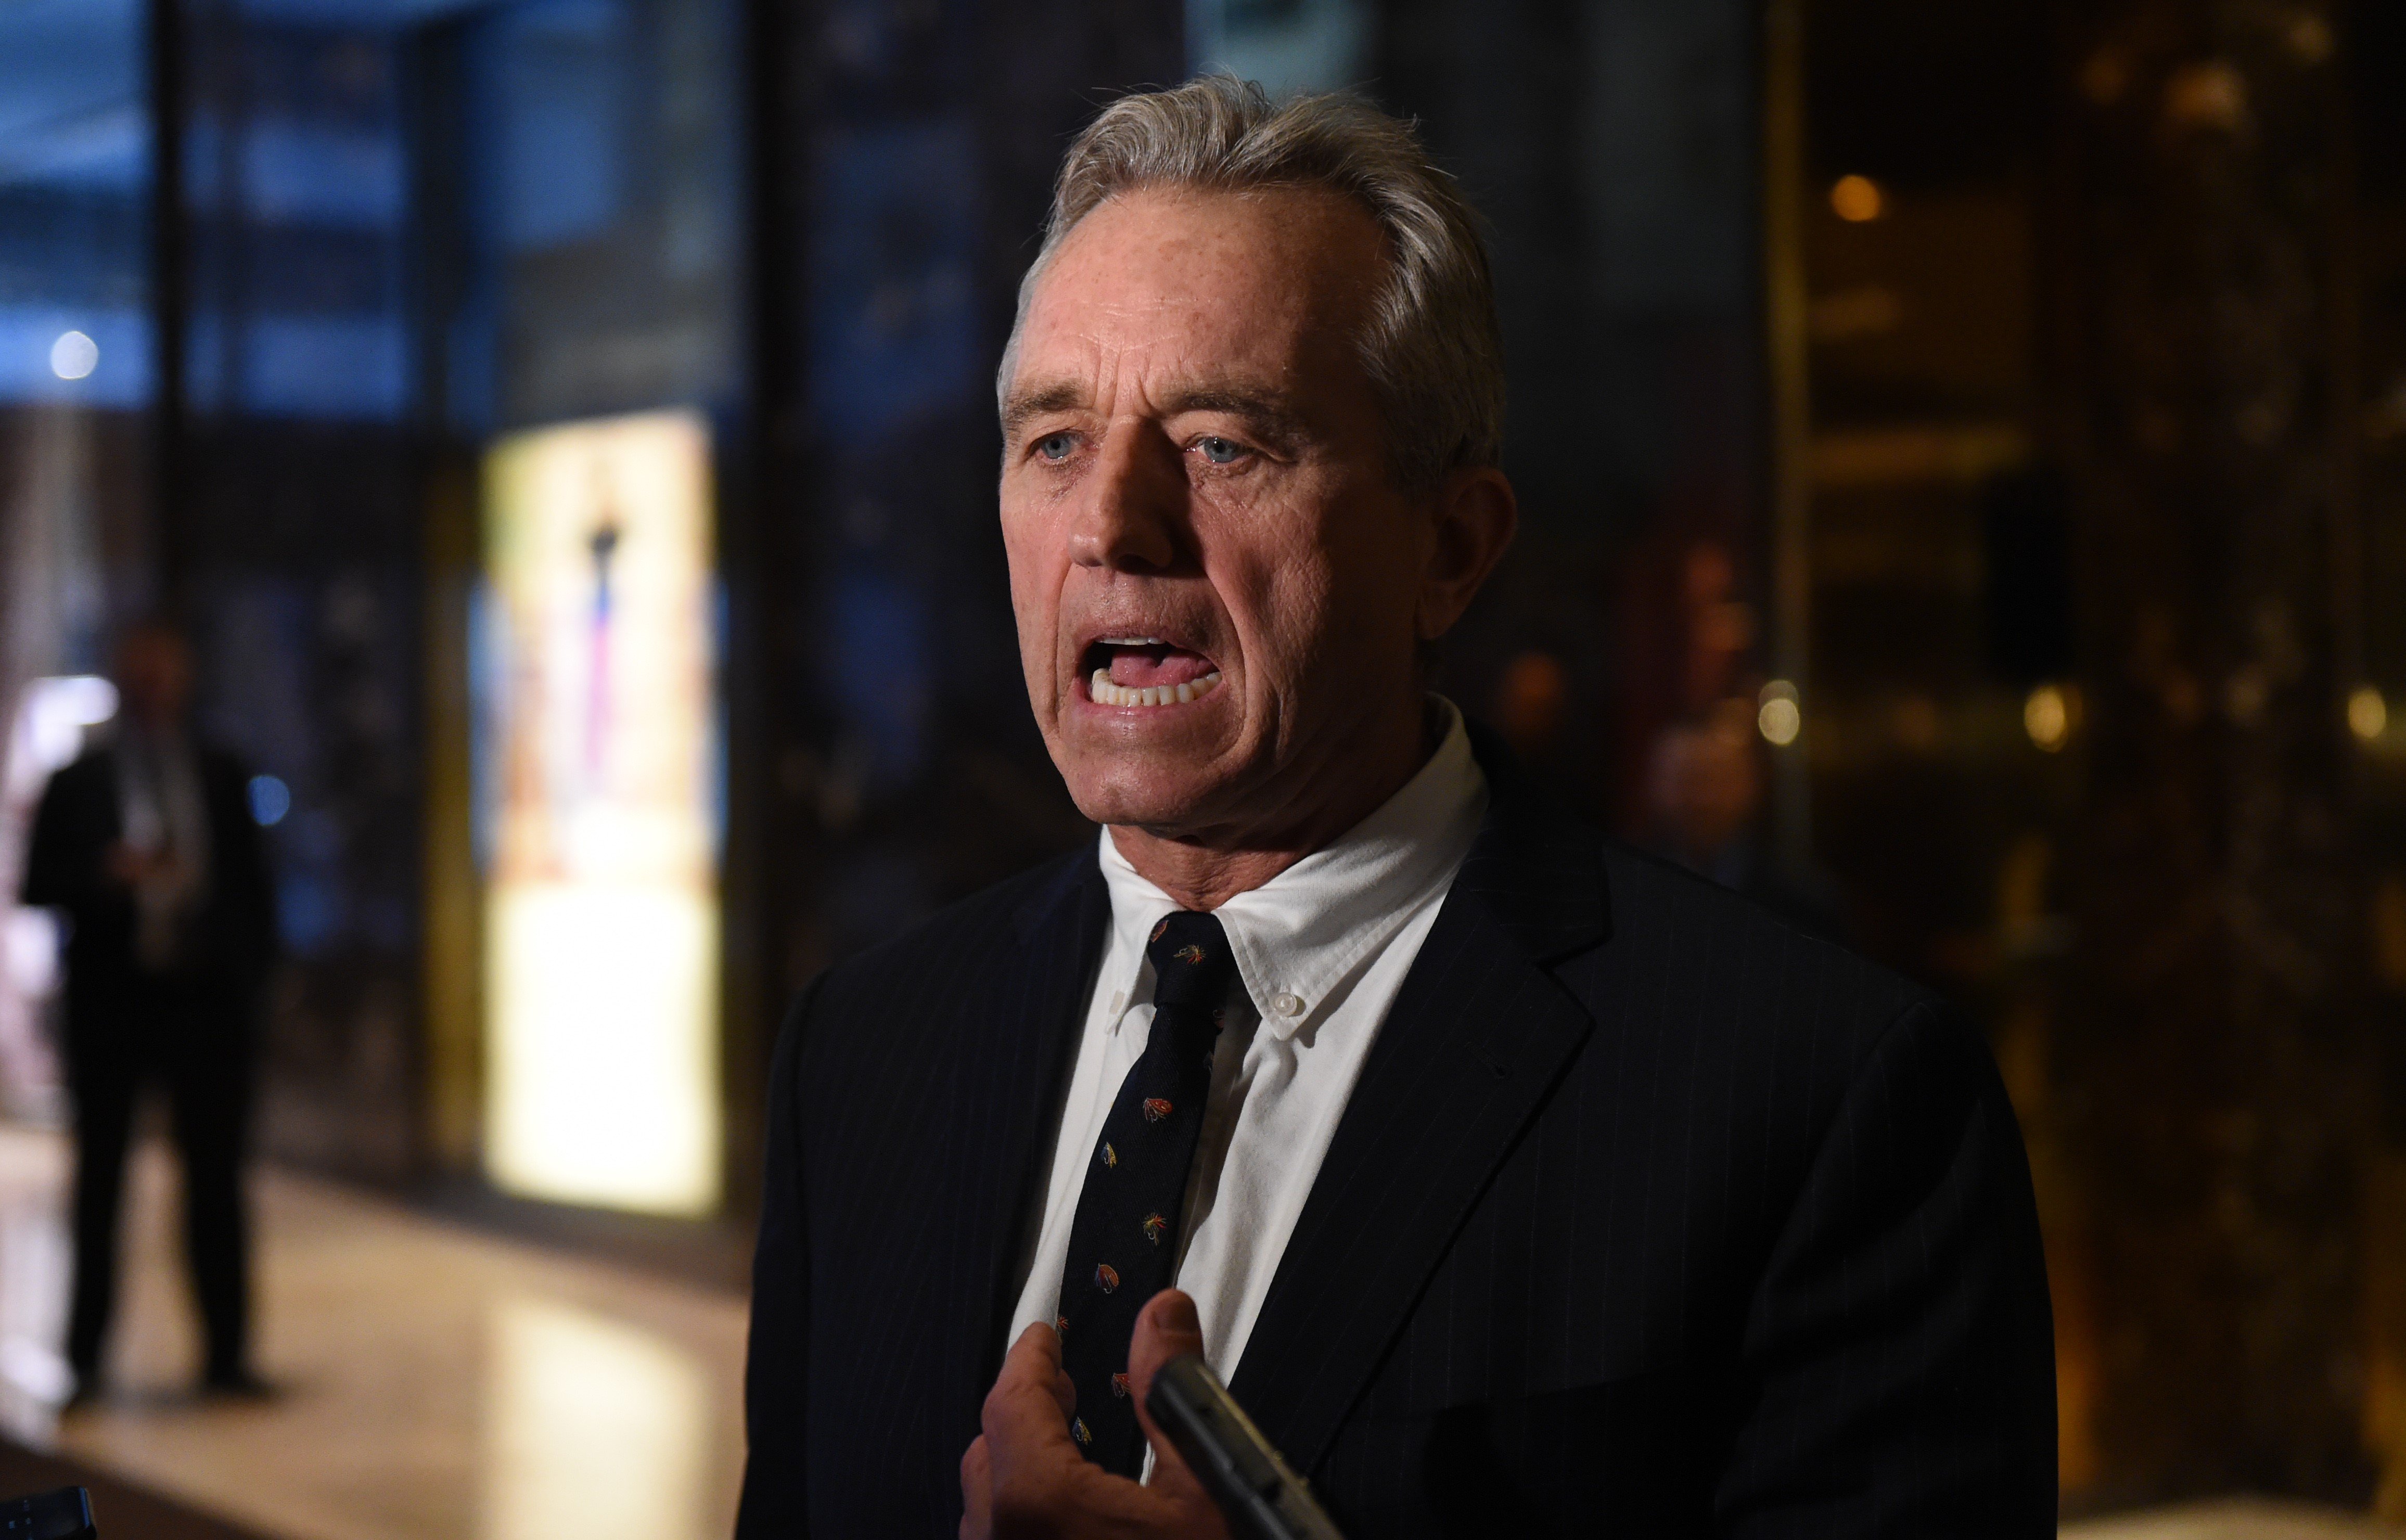 Robert F. Kennedy, Jr. (Crédito: TIMOTHY A. CLARY/AFP/Getty Images)